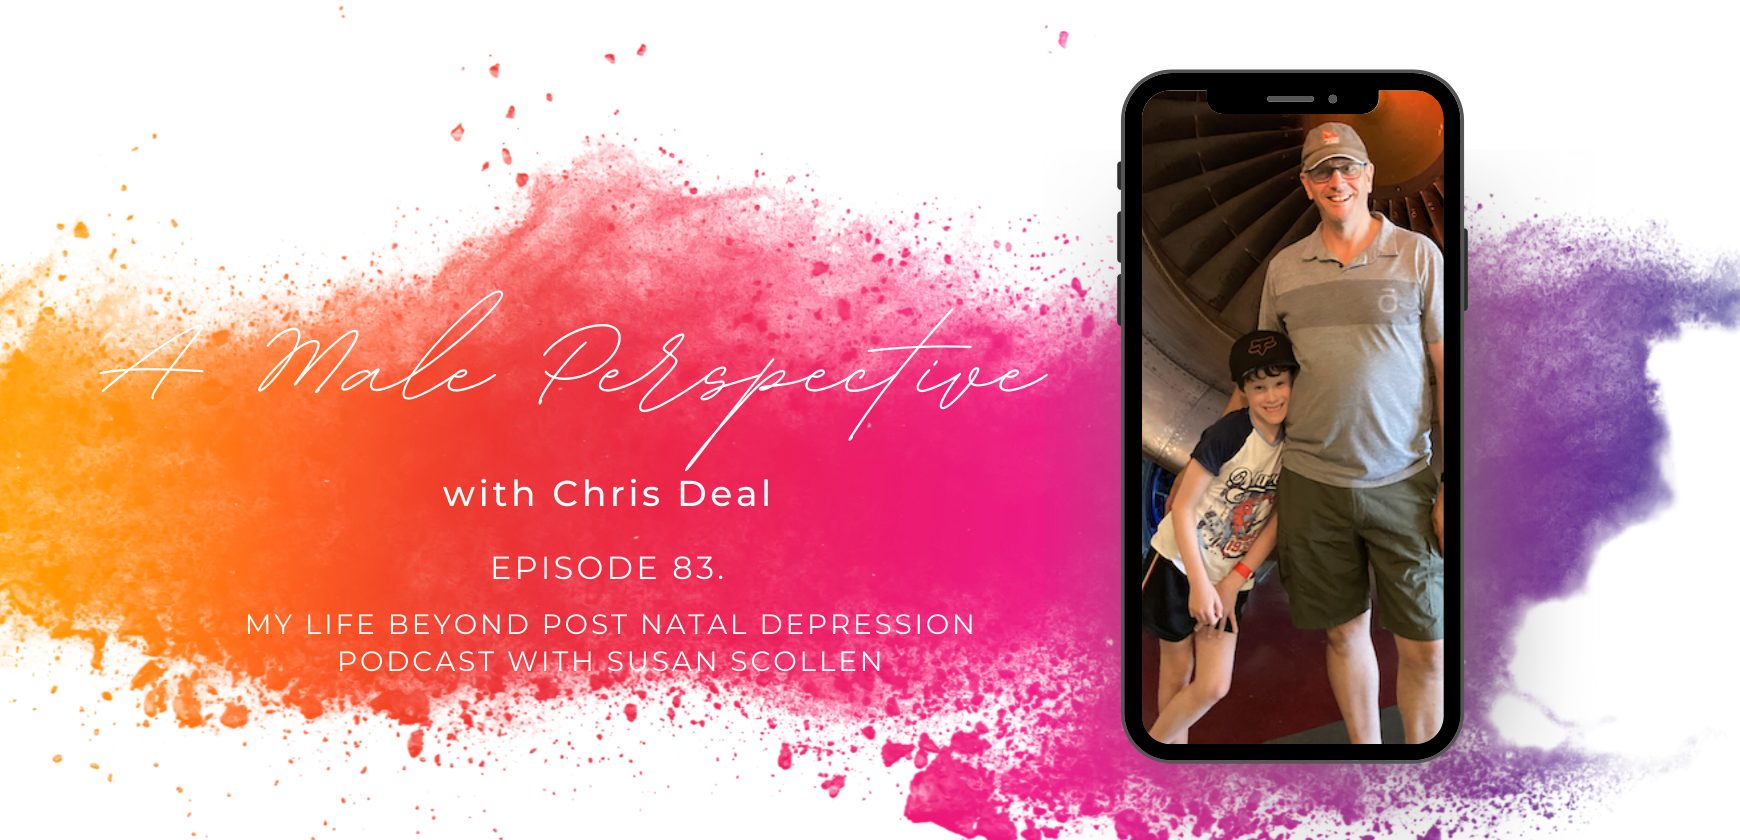 A Male Perspective with Chris Deal